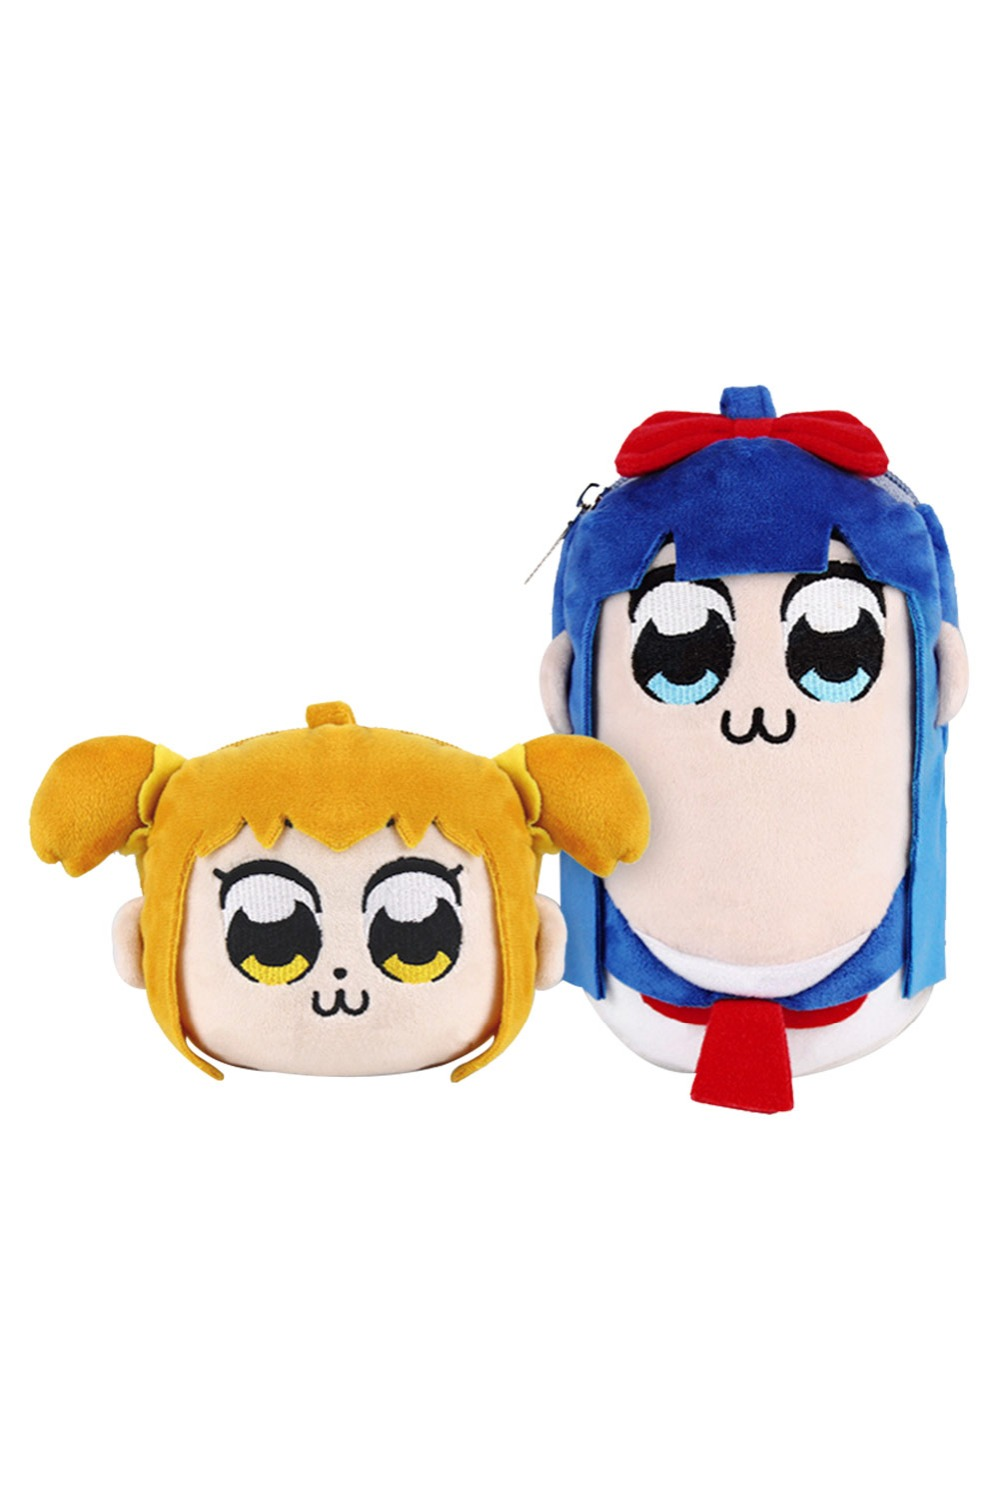 POP TEAM EPIC Doll Phone Purse Creative Plush Toy Gift POP TEAM EPIC Wallet Cosplay For Costume